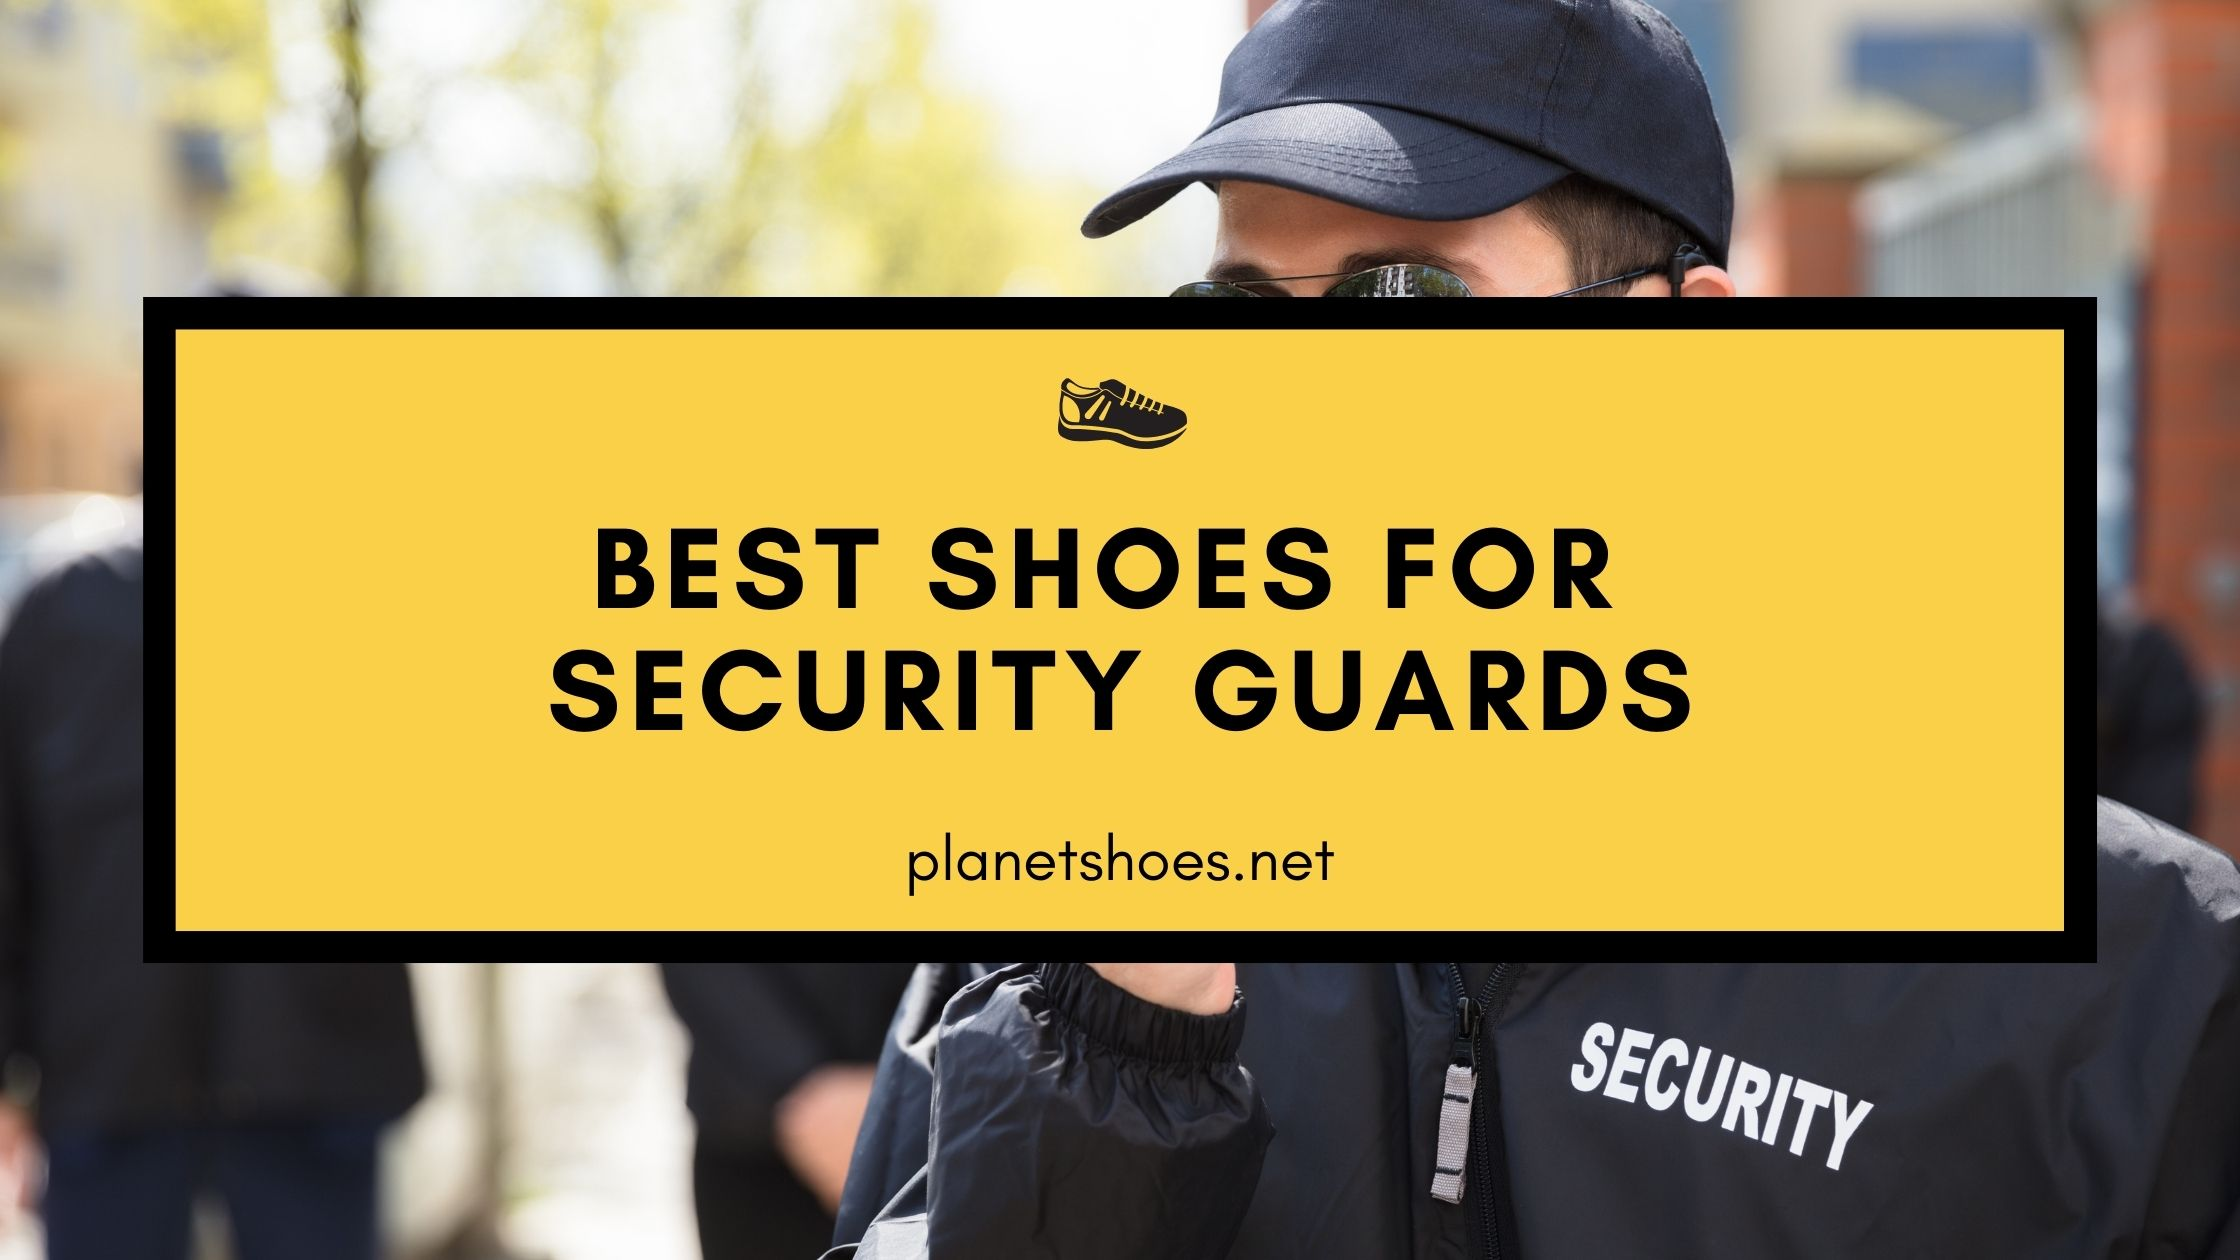 PS-Best-shoes-for-security-guards